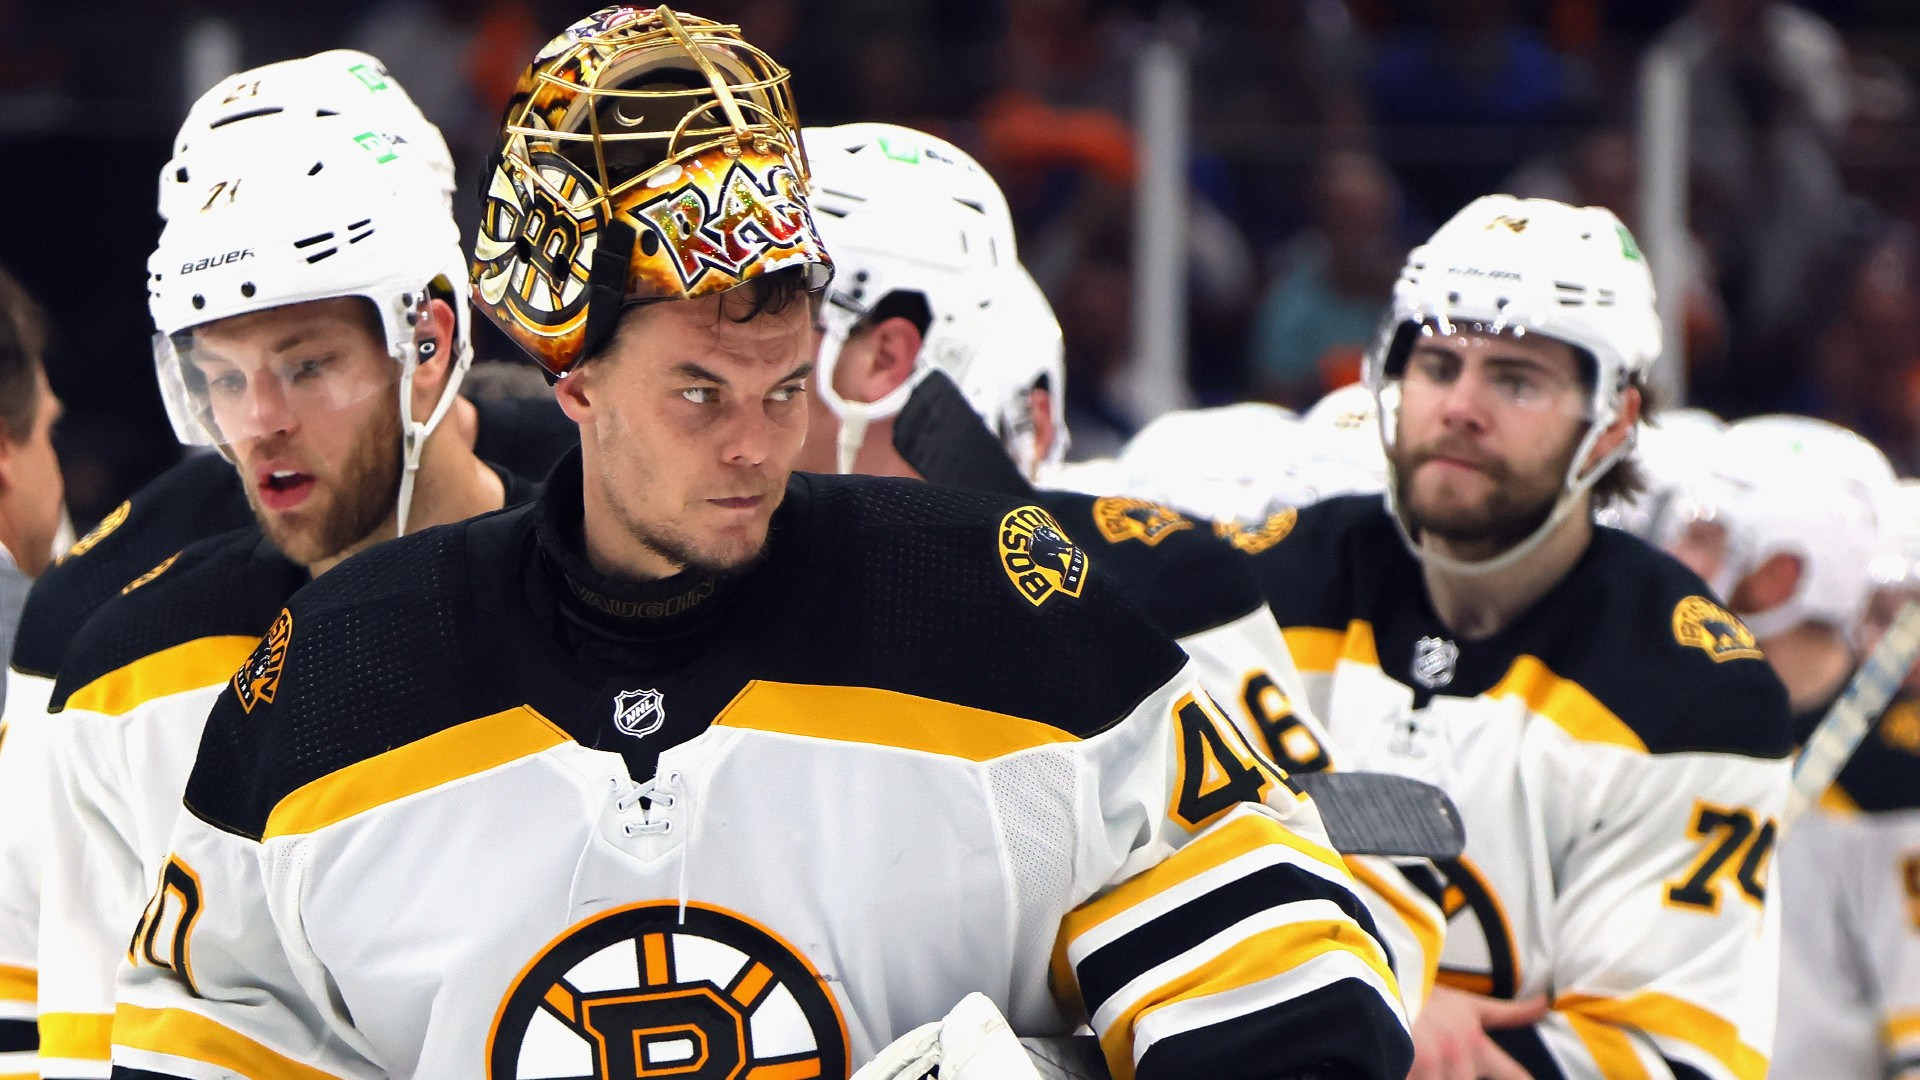 The Tuinska Rask of the Bruins played through hip-labrum, possibly losing the start of the NHL season